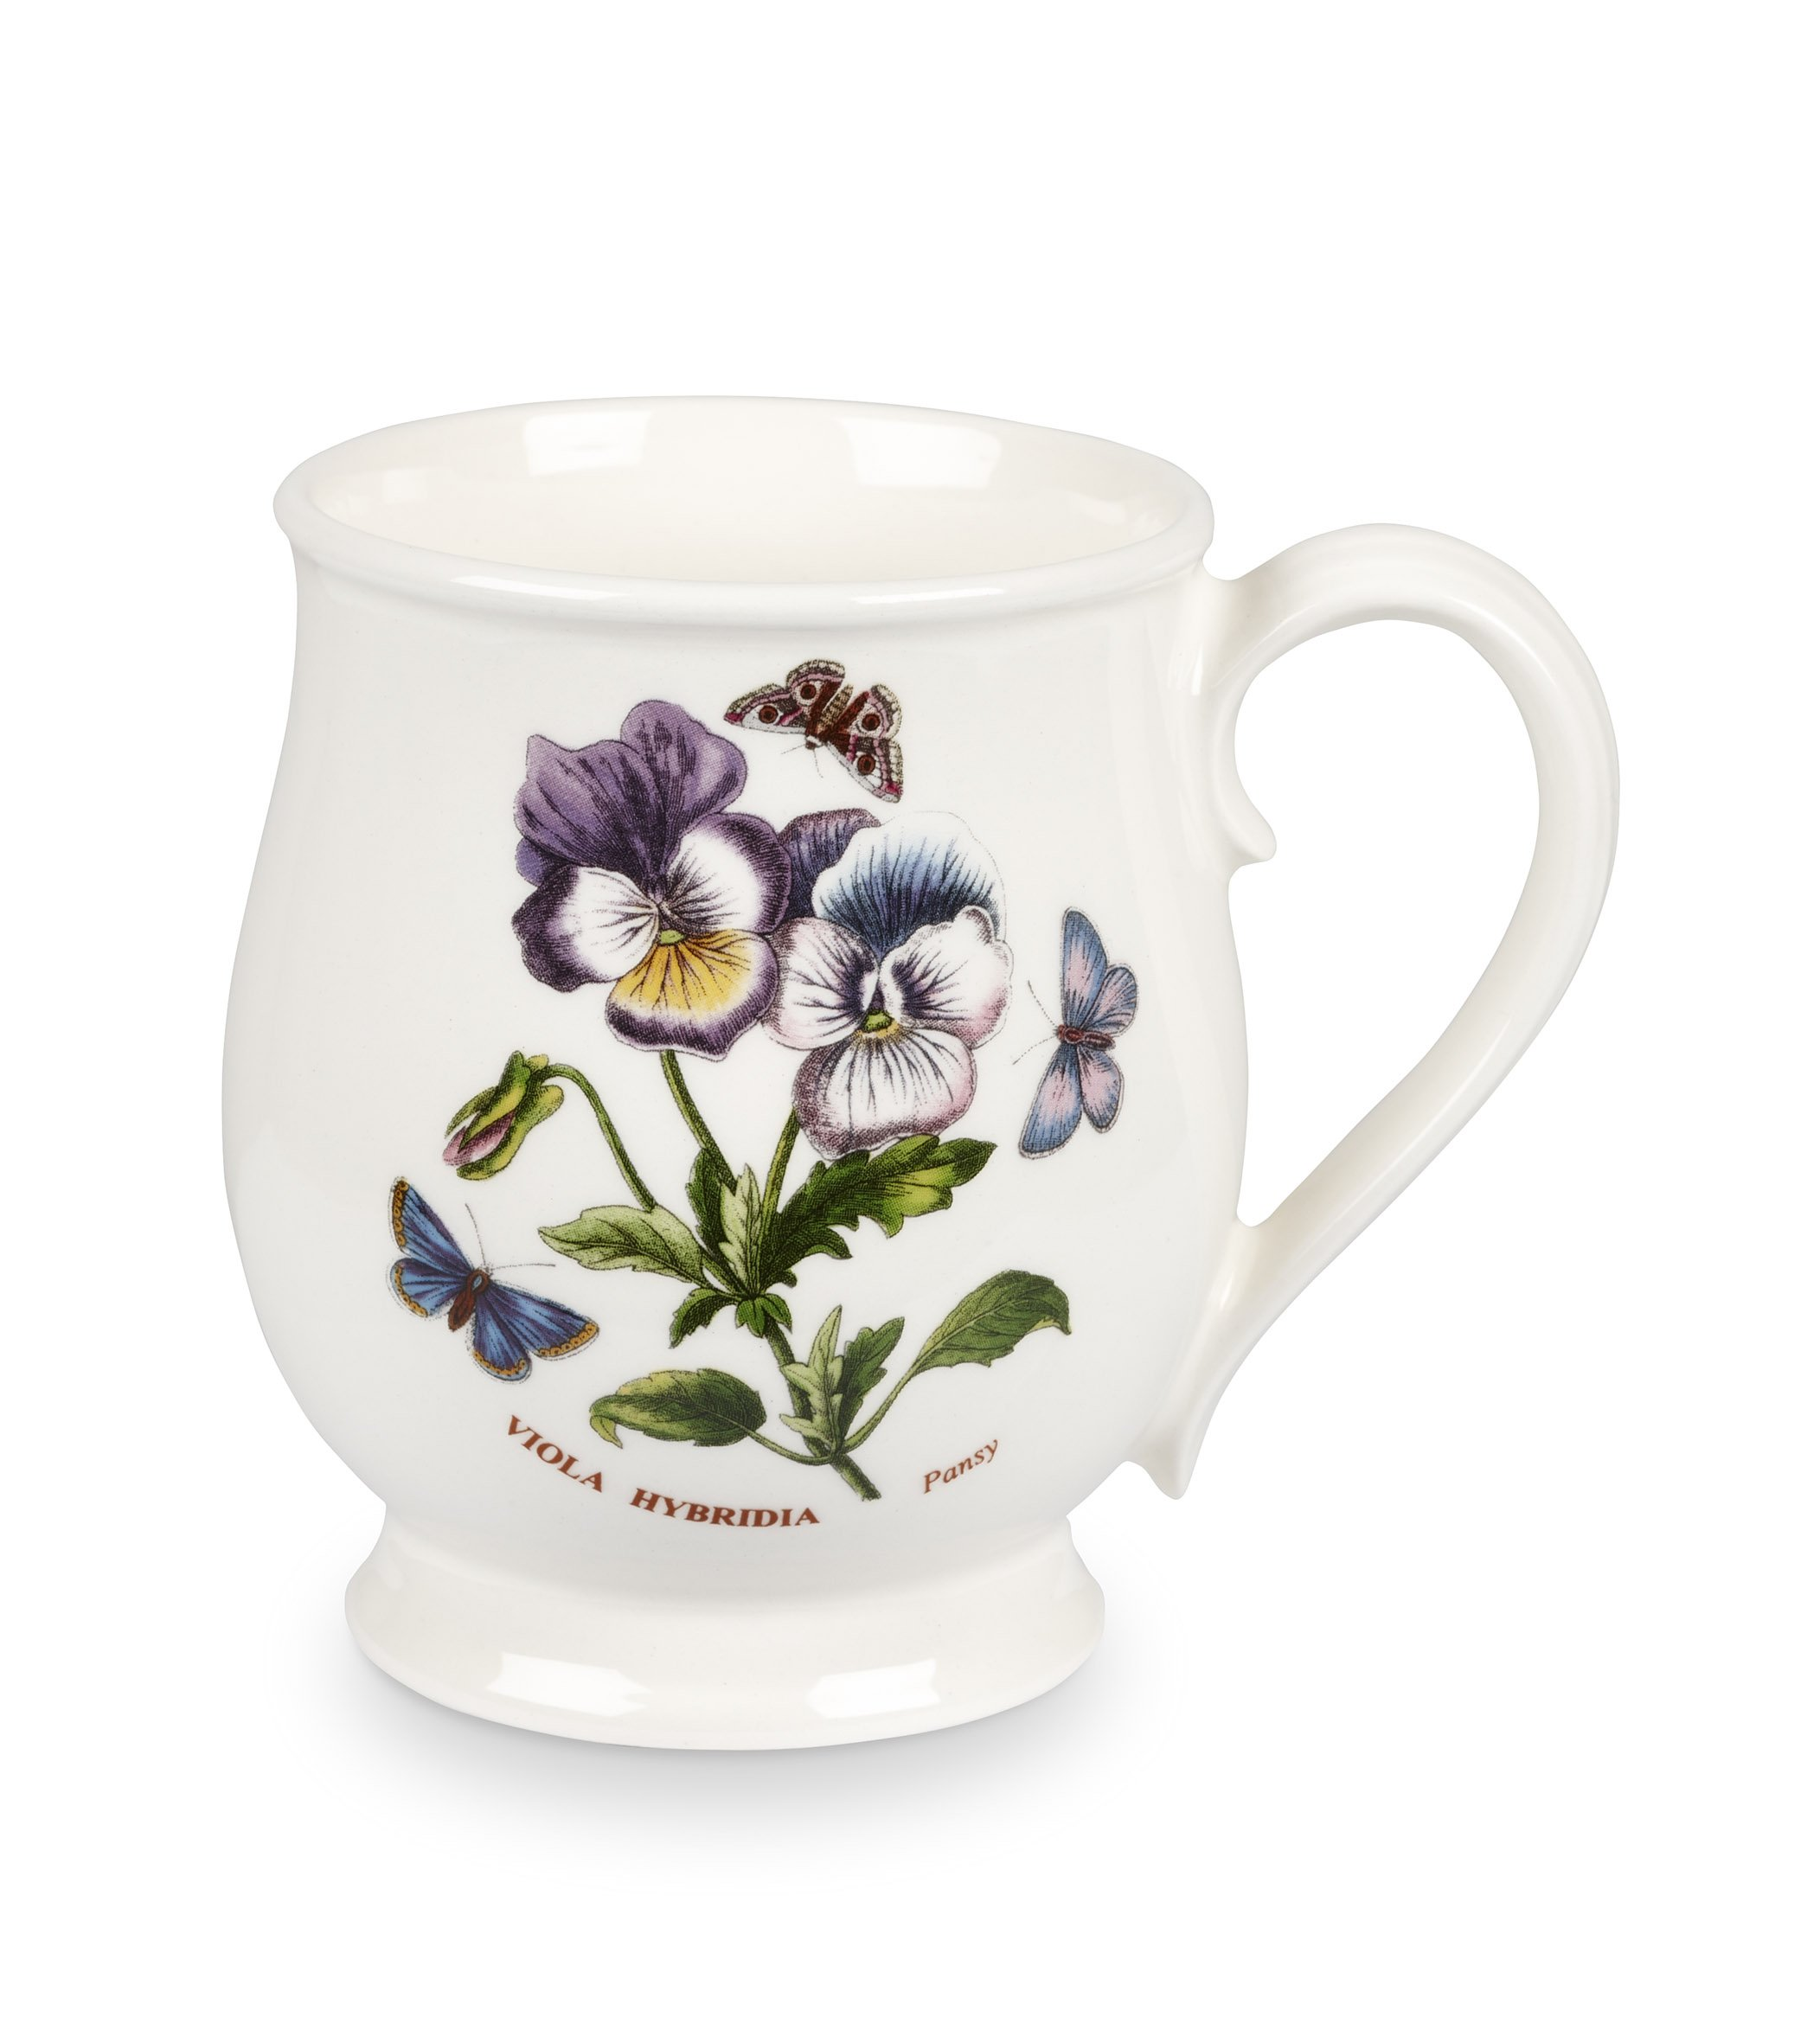 Portmeirion Botanic Garden Bristol Mug, Set of 6 Assorted Motifs